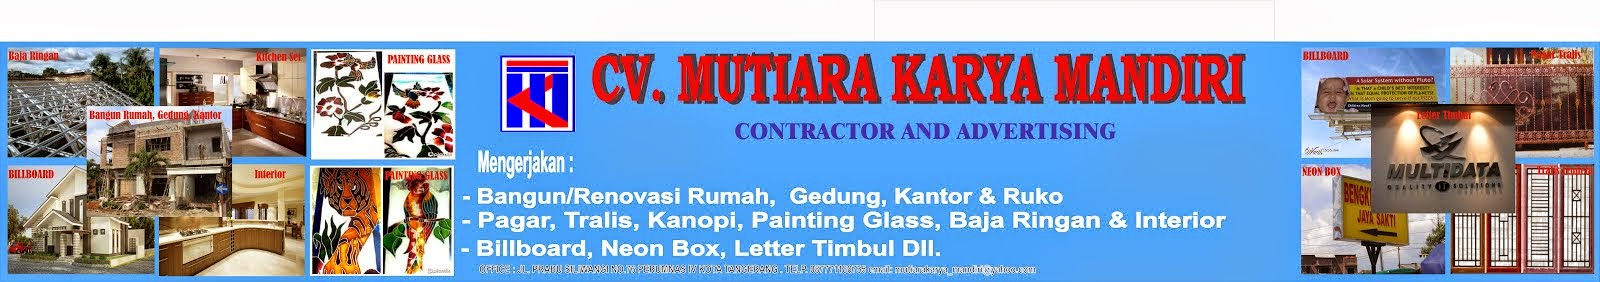 GENERAL CONTRACTOR AND ADNERTISING